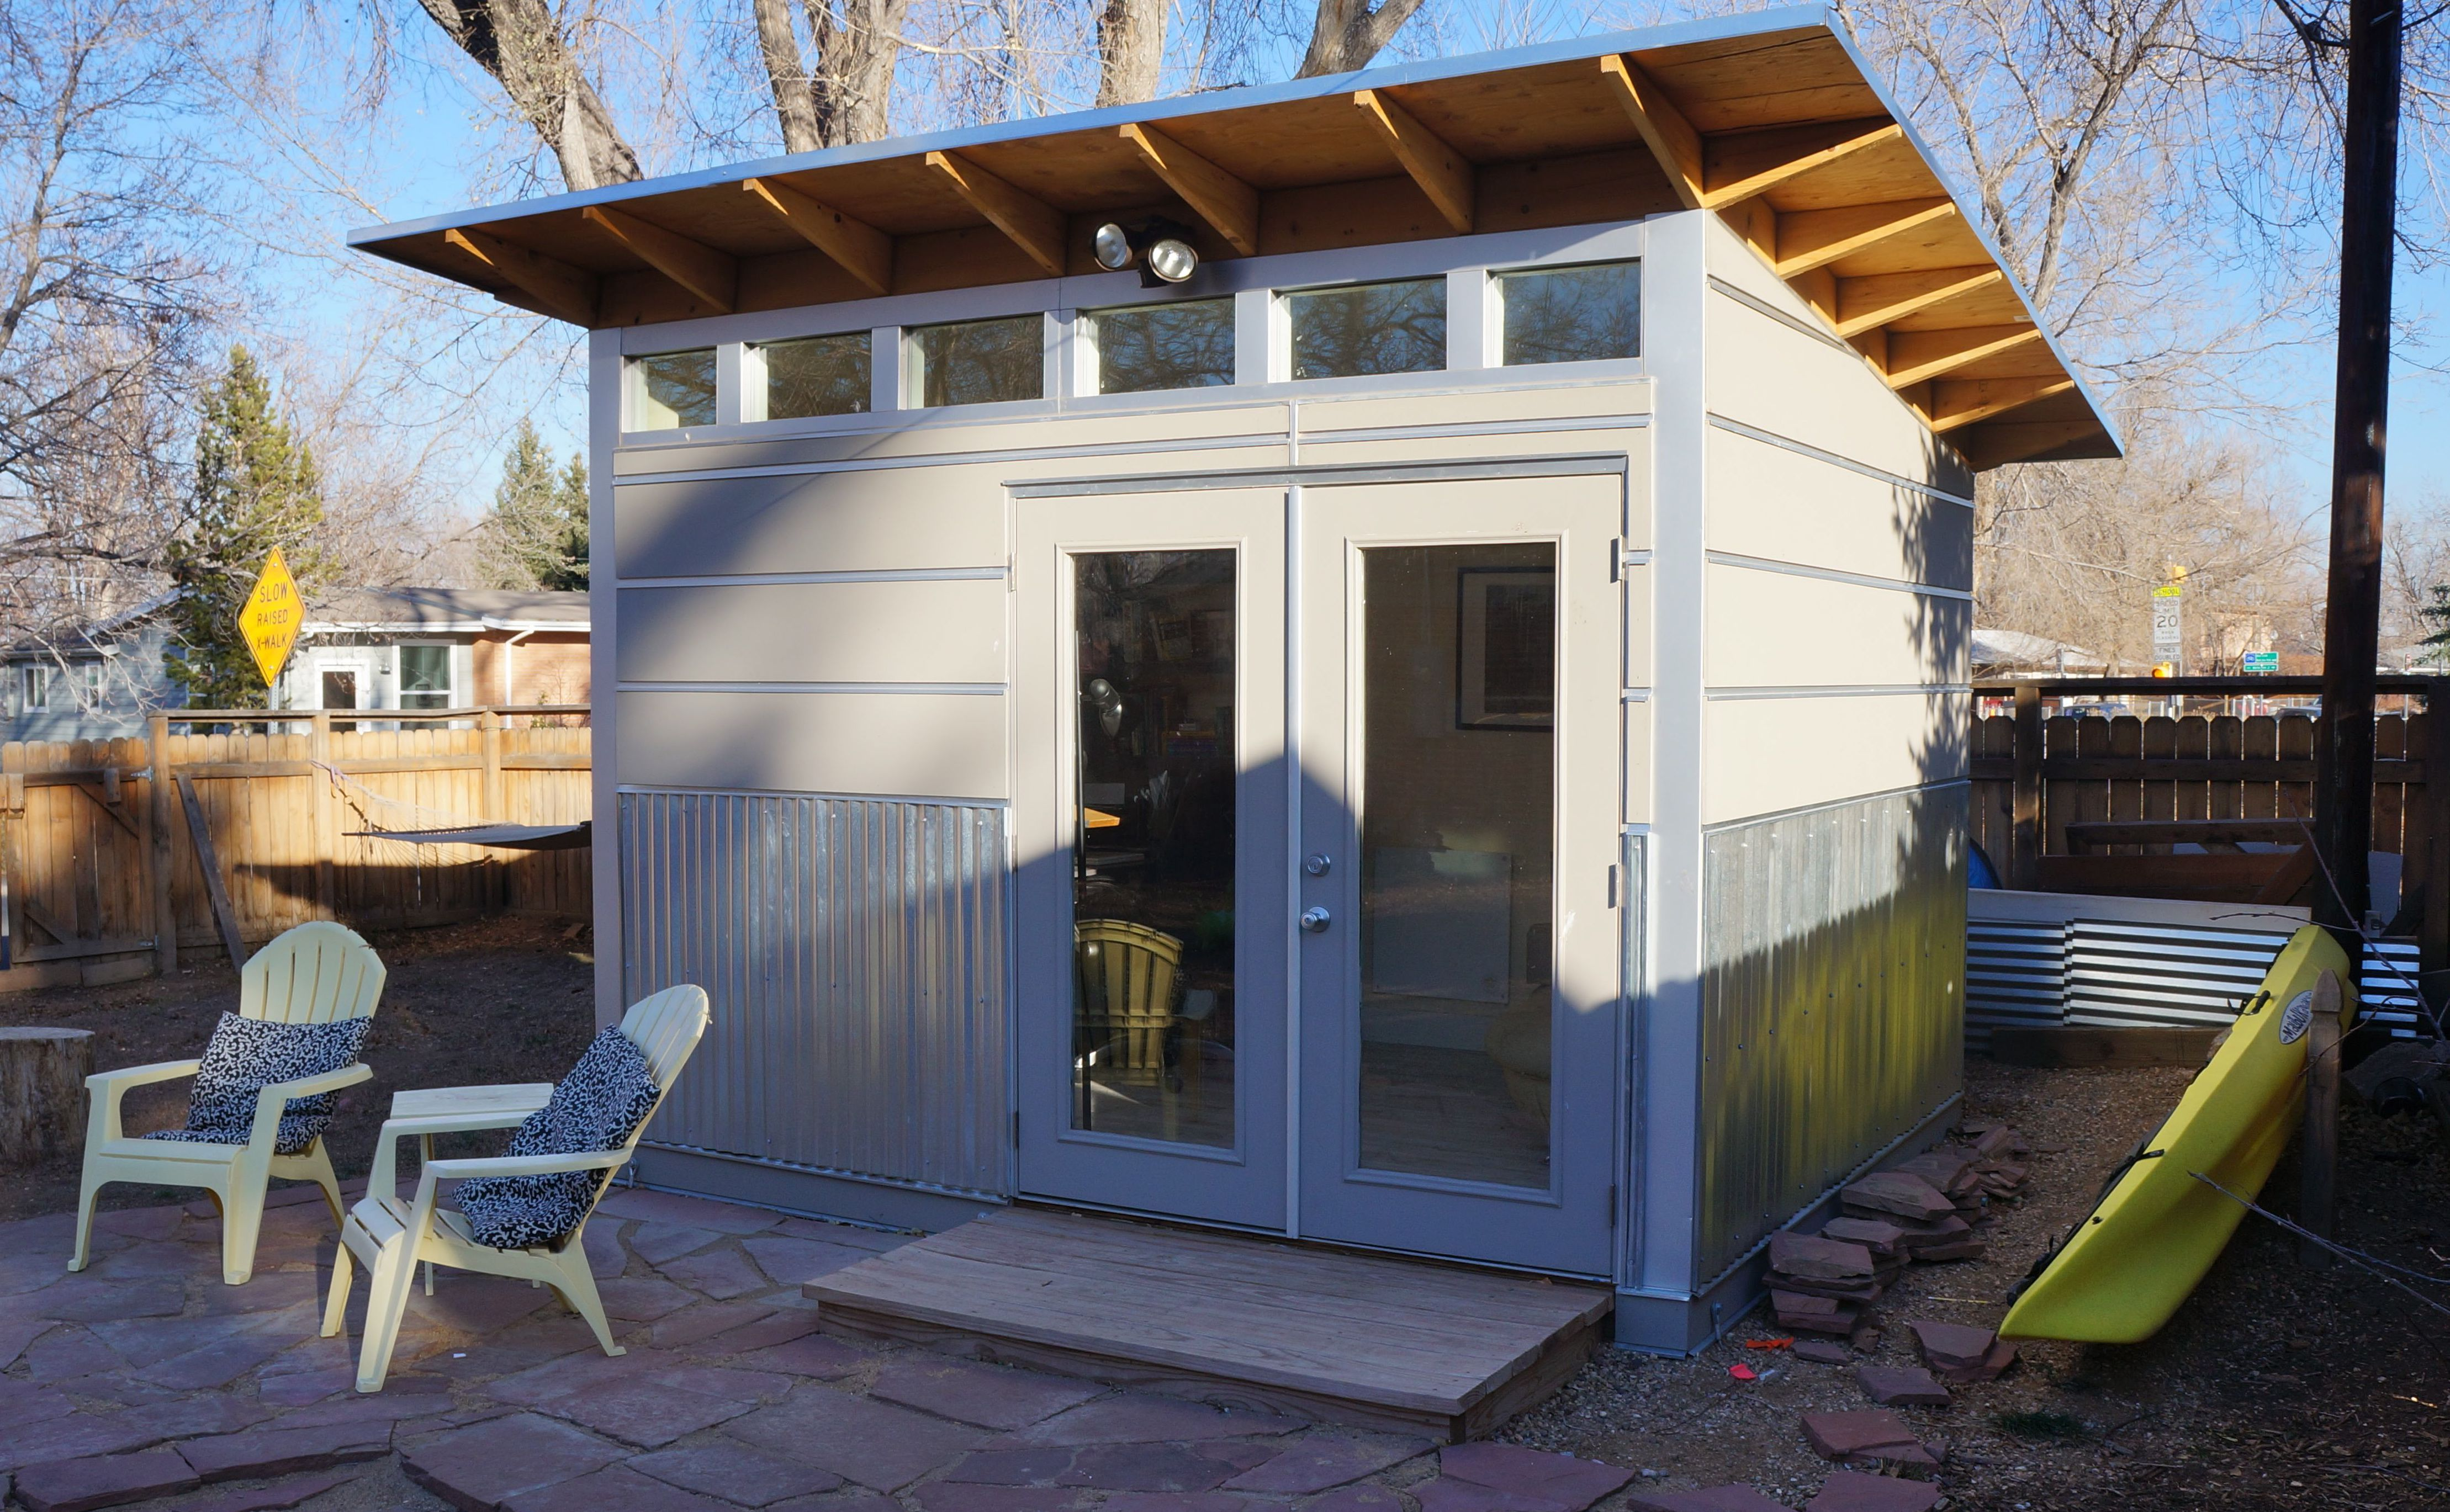 Man Caves Ni : Www.studio shed.com sporty storage? man cave? woman what's